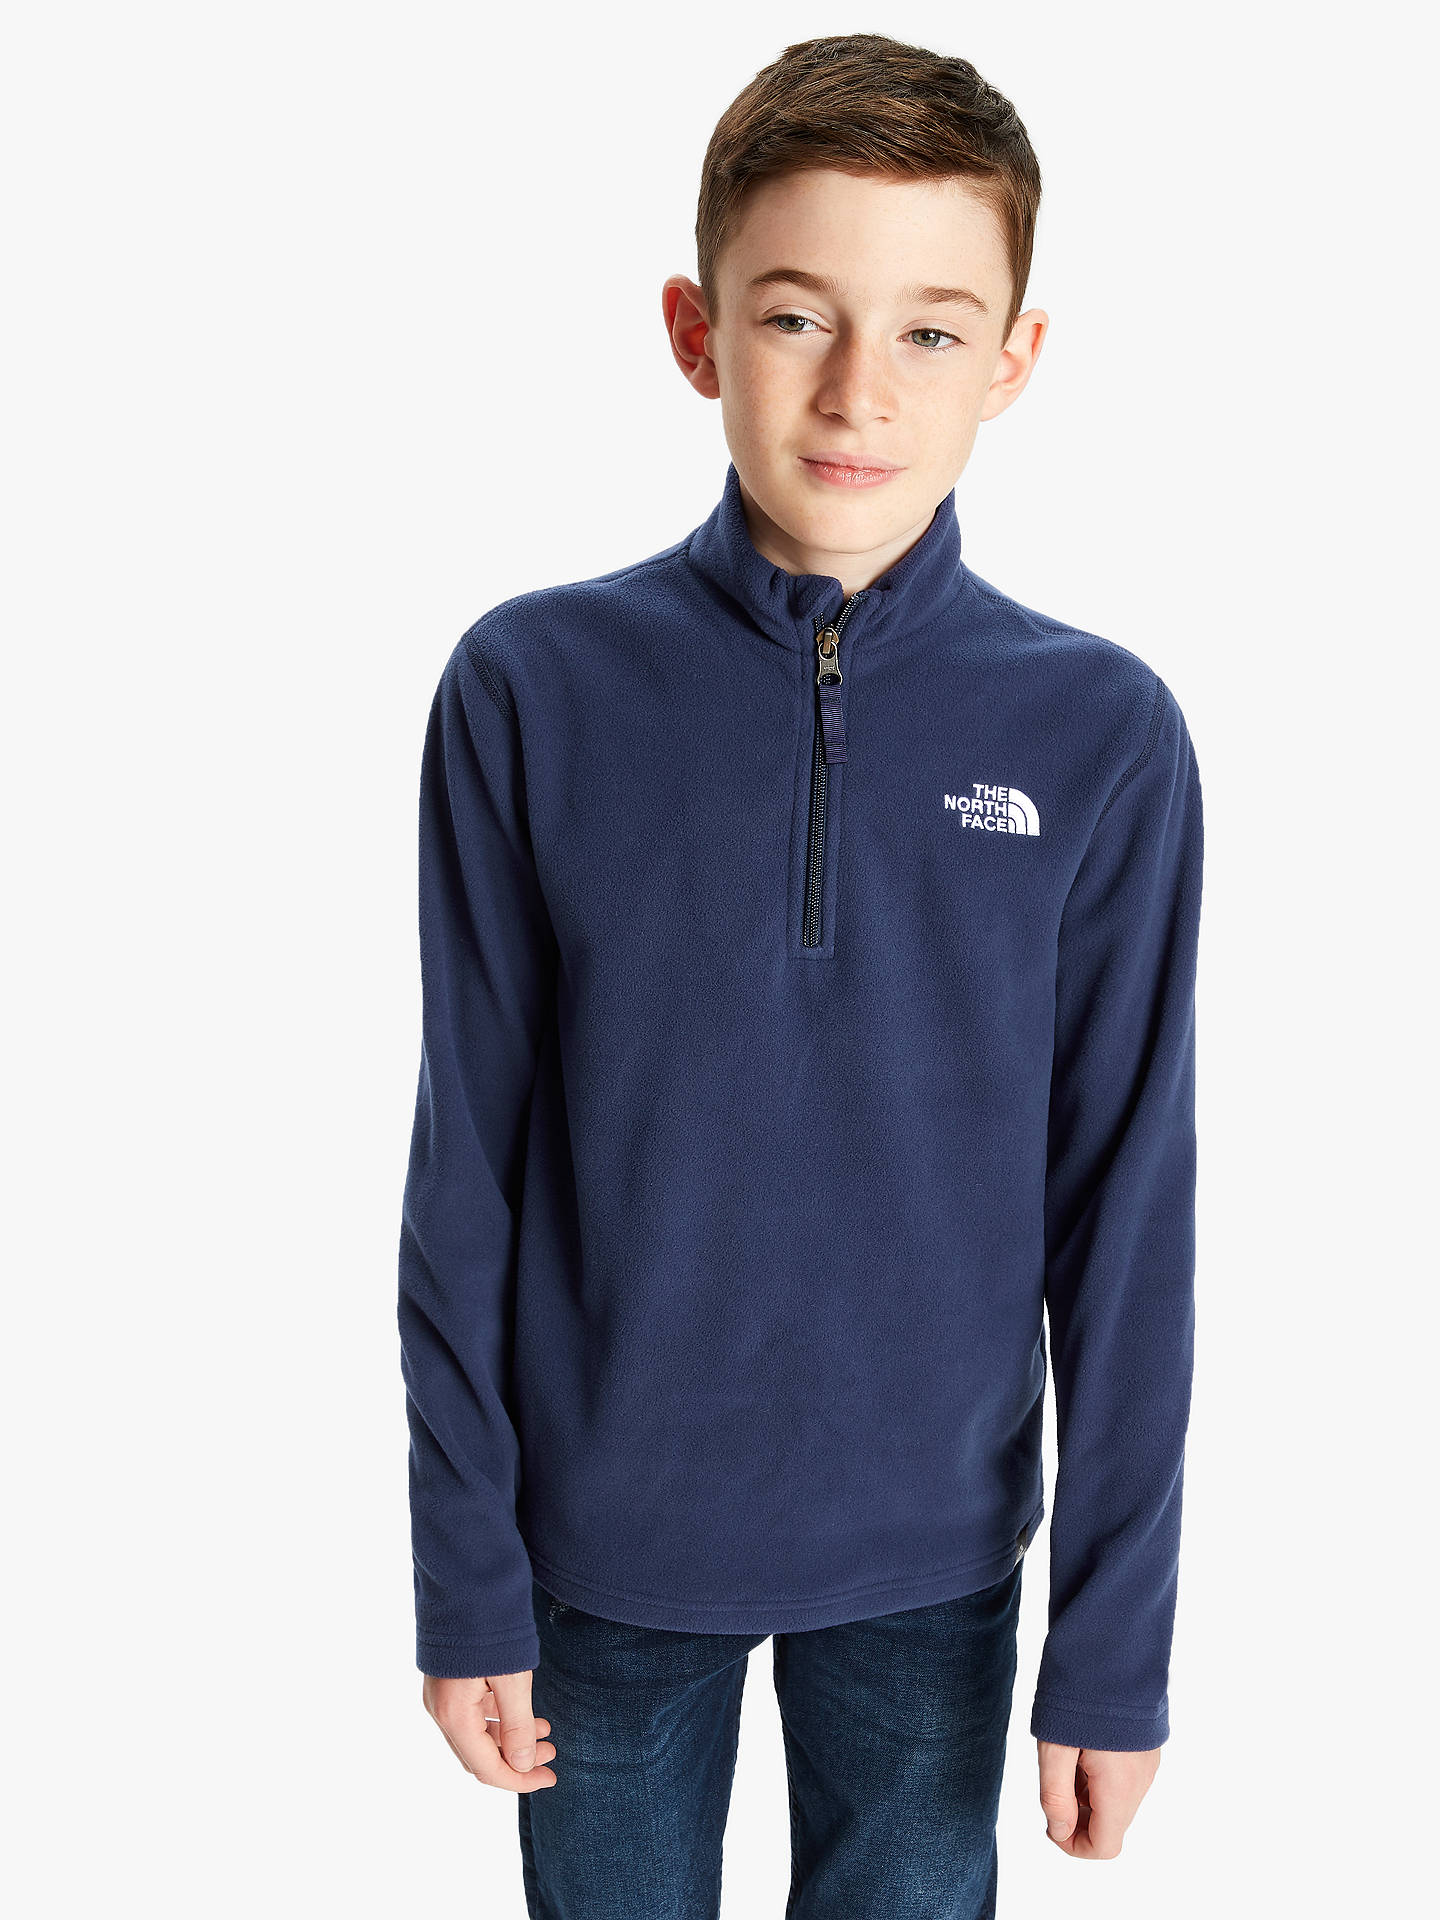 8c6524833 The North Face Boys' Glacier Fleece Jumper, Navy at John Lewis ...